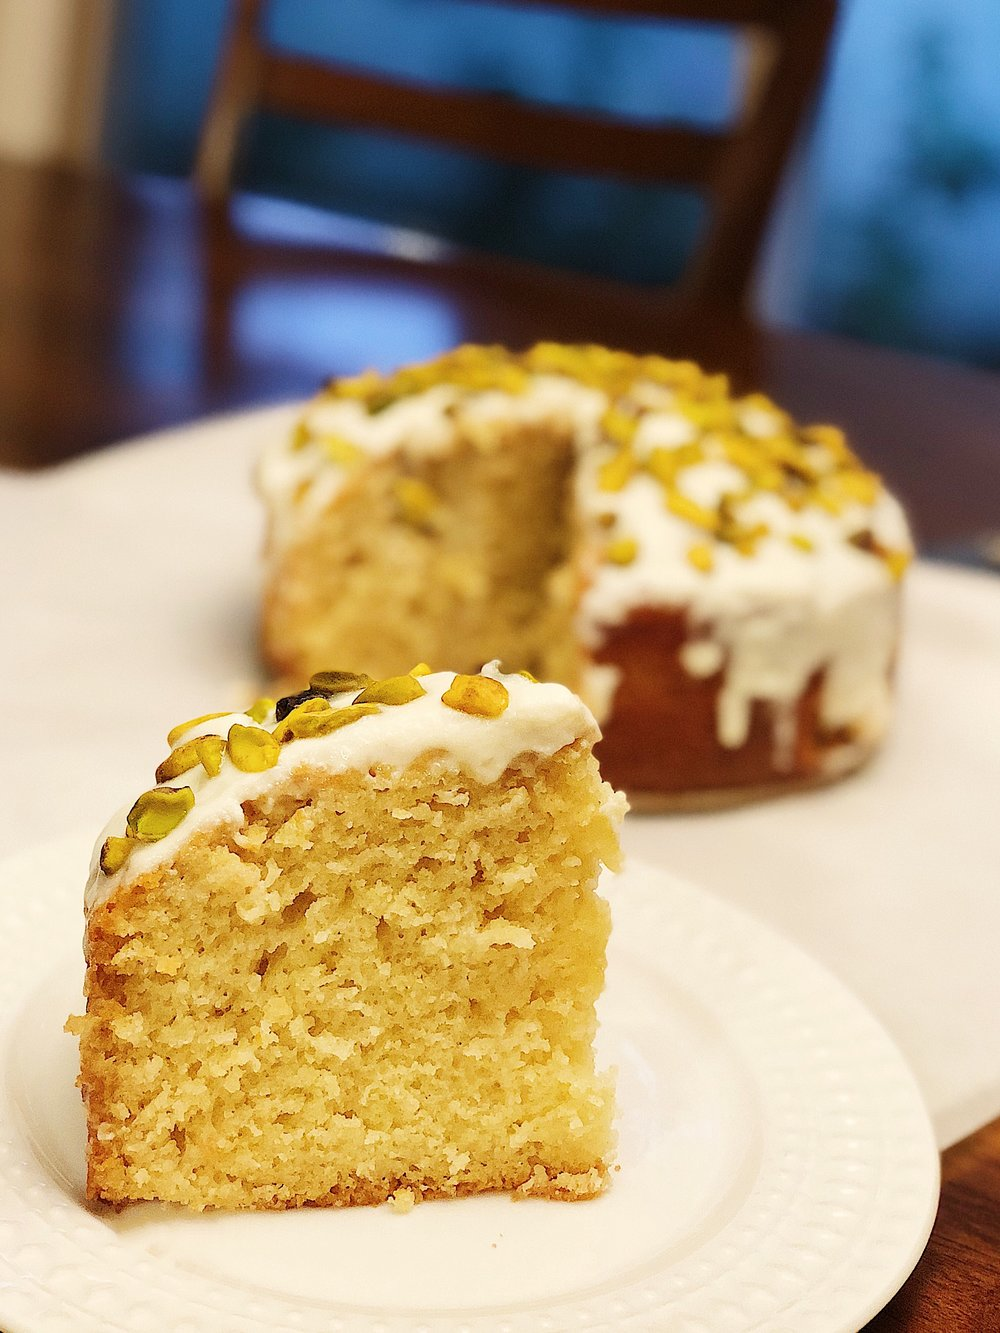 Maple Honey Cake with Pistachio and Ricotta Frosting